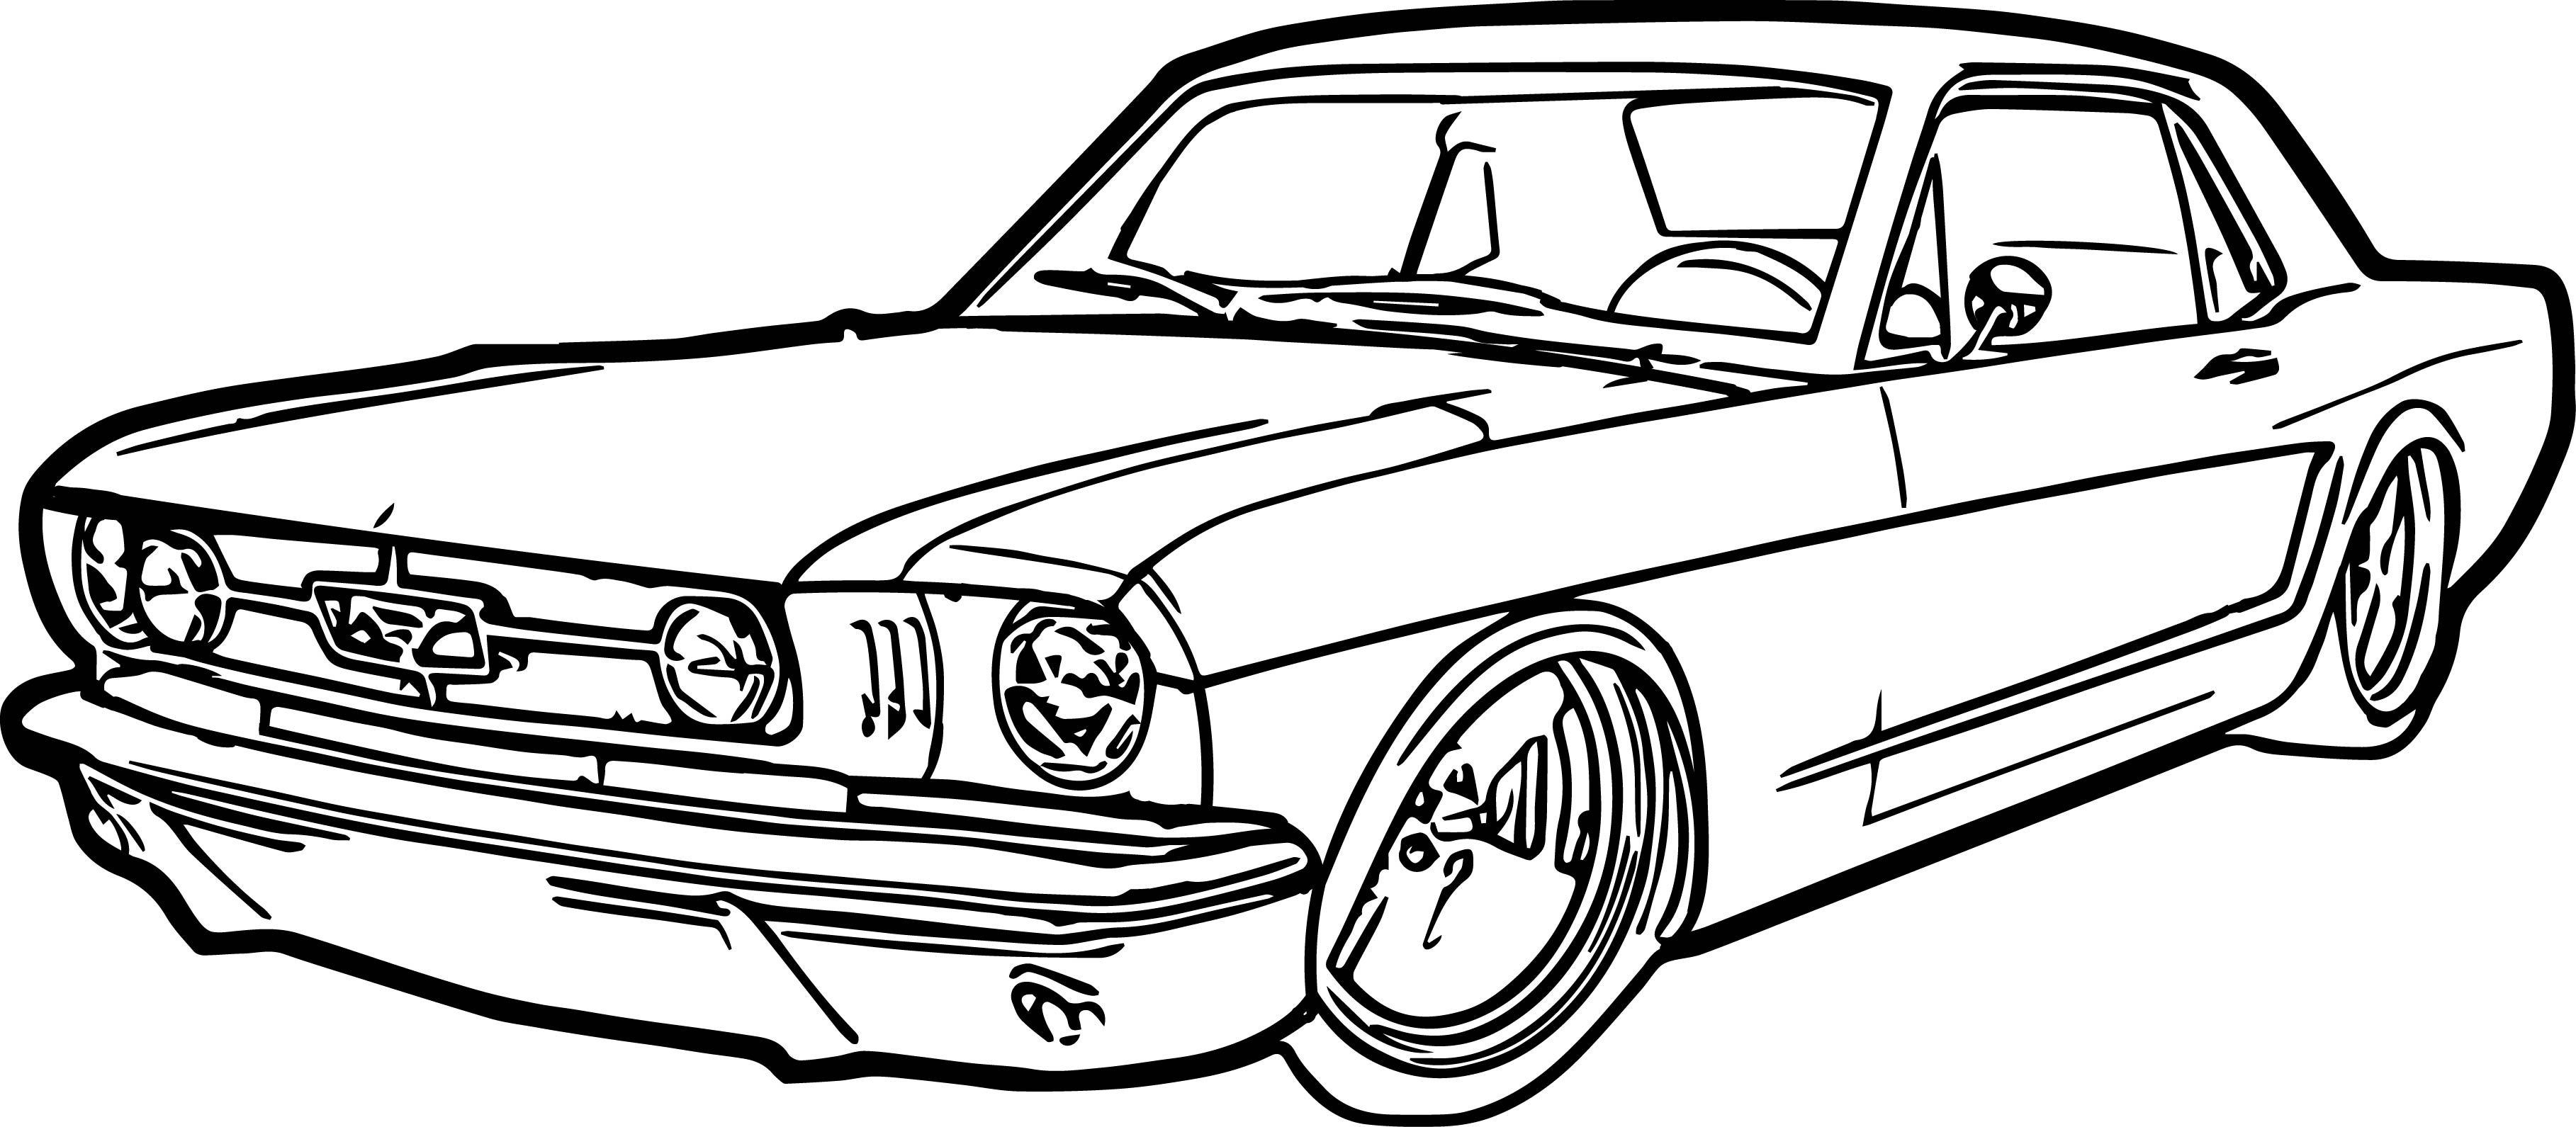 mustang coloring pages - ford mustang car coloring page